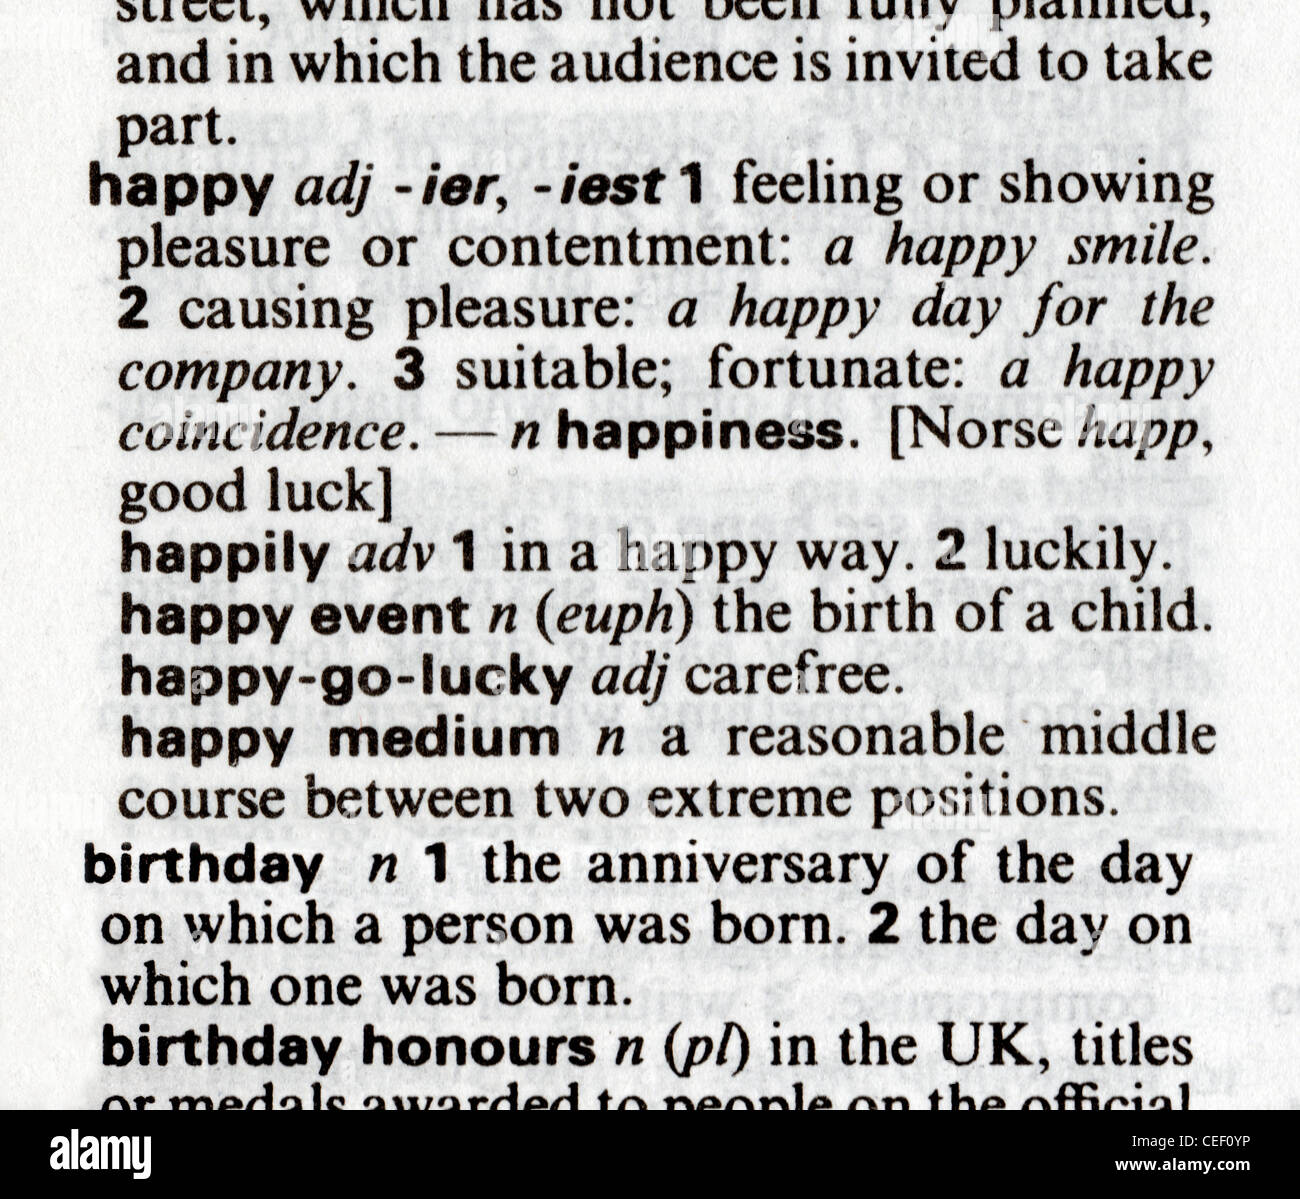 Happy Definition Of Happy At Dictionary Com >> Dictionary Definitions Of Happy And Birthday Pasted Together